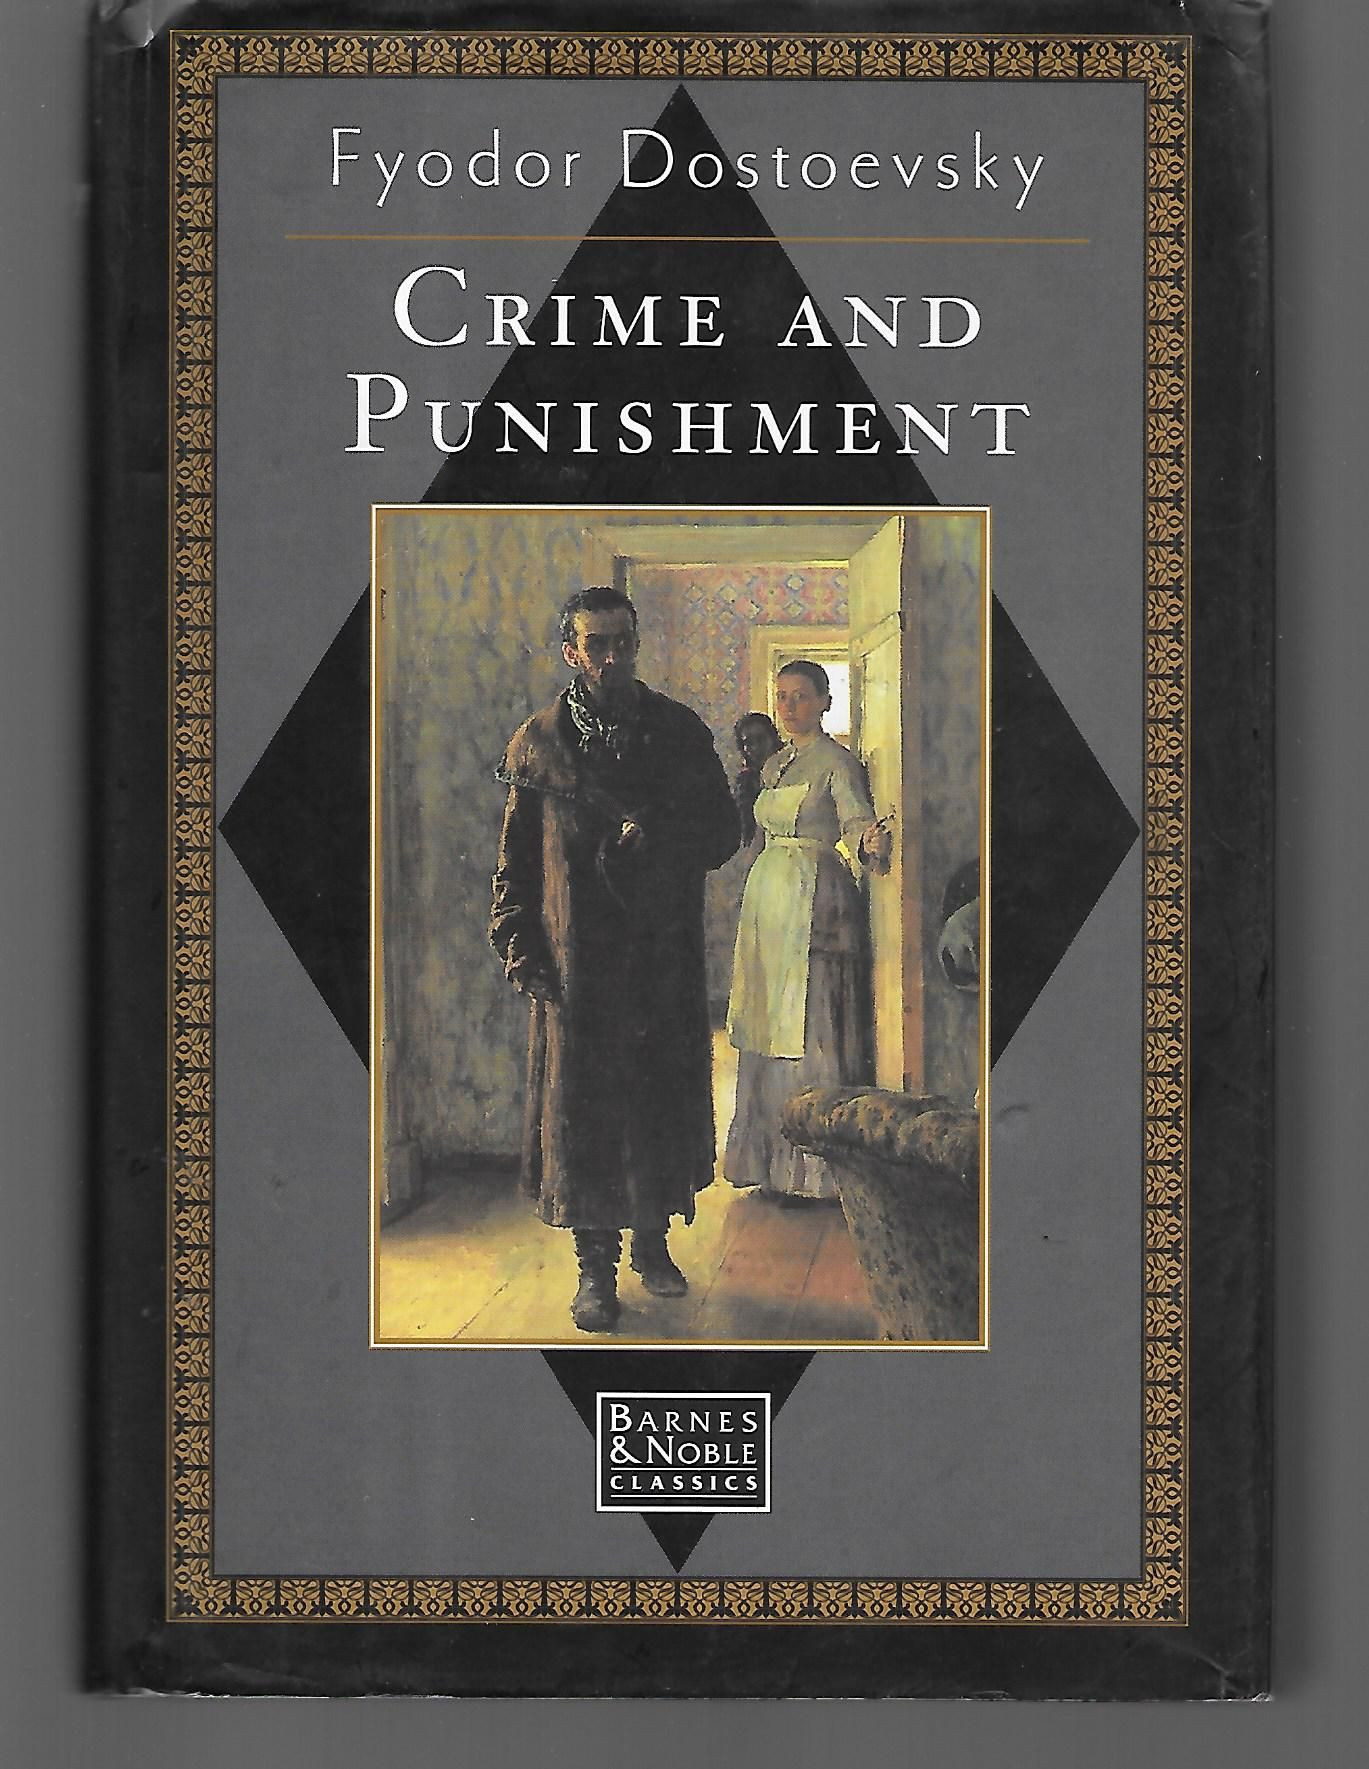 an analysis of the character of luzhin in crime and punishment by fyodor dostoevsky Map for fyodor dostoevsky's crime and punishment learn the roles and relationships of the in crime and punishment, and how they contribute to the plot.